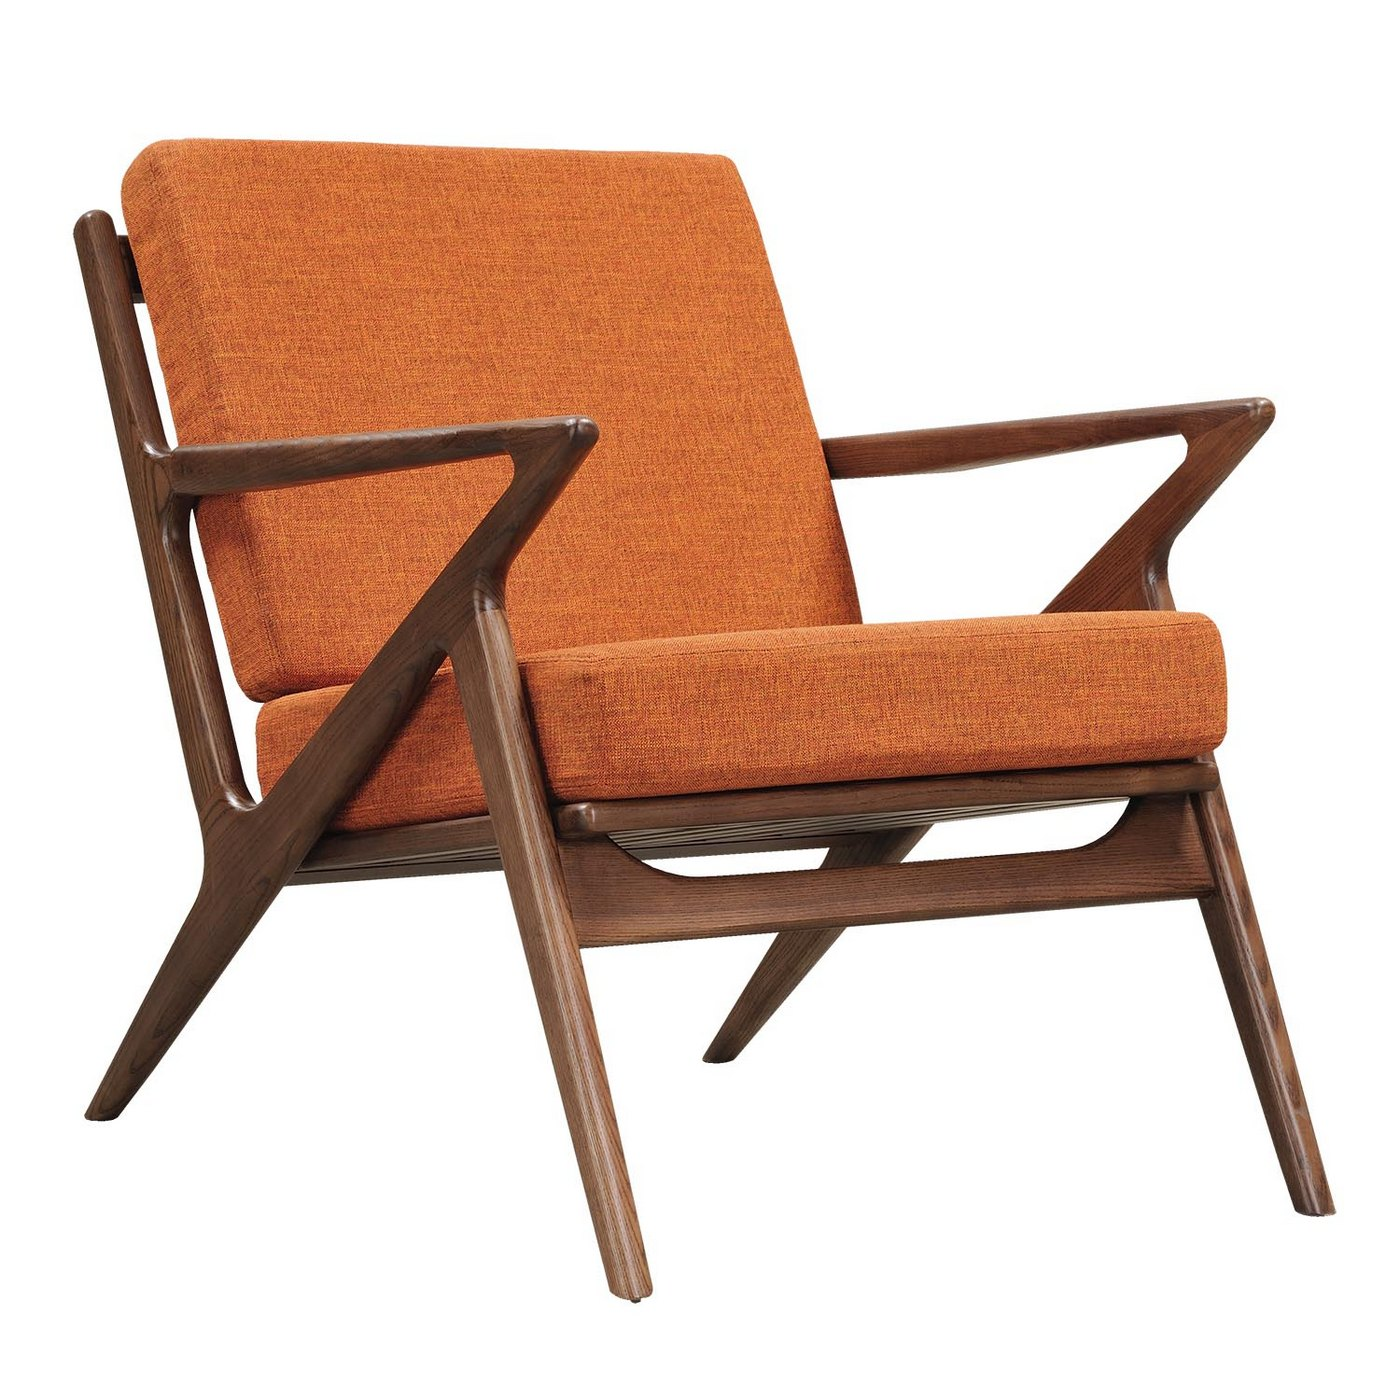 Midcentury Chairs Zain Mid Century Modern Orange Fabric Chair With Wooden